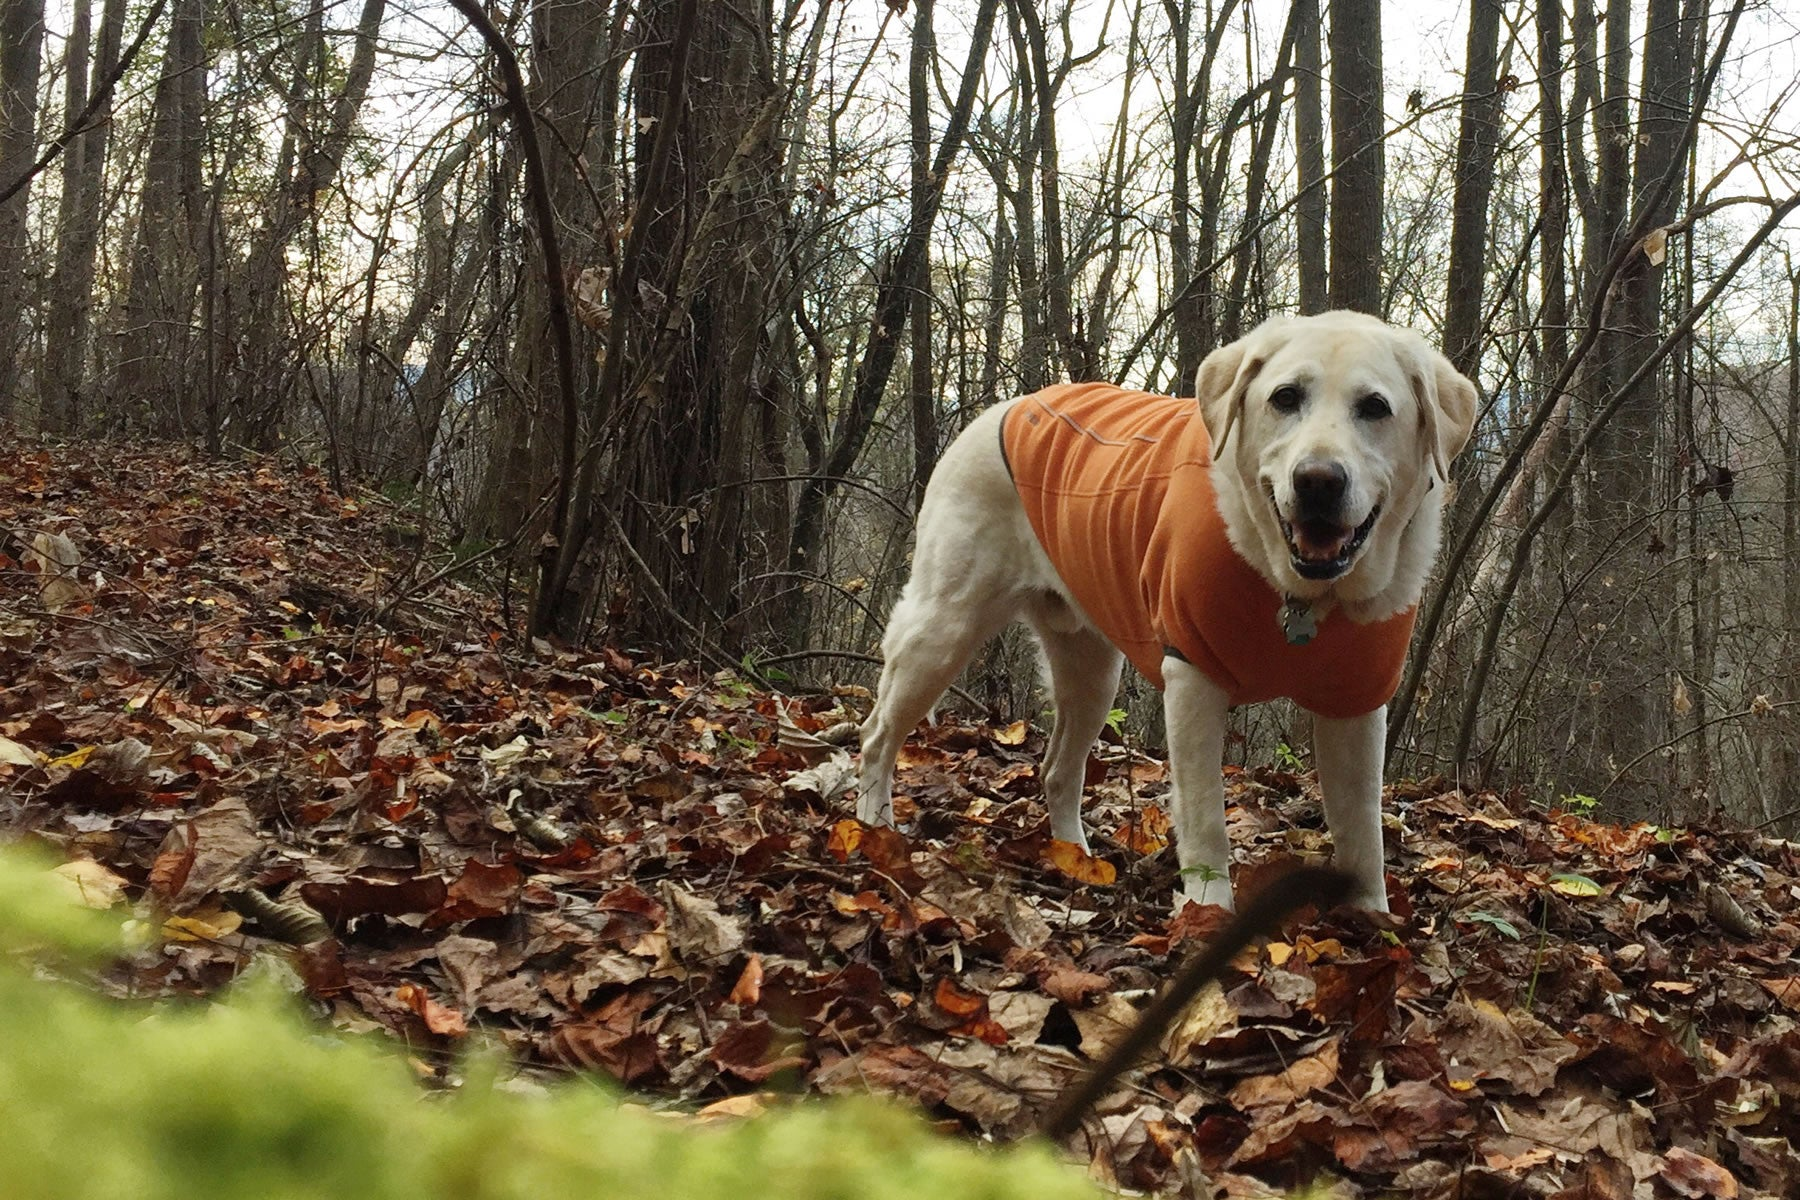 Baylor in Climate Changer Fleece Jacket stands in a pile of leaves in the woods.